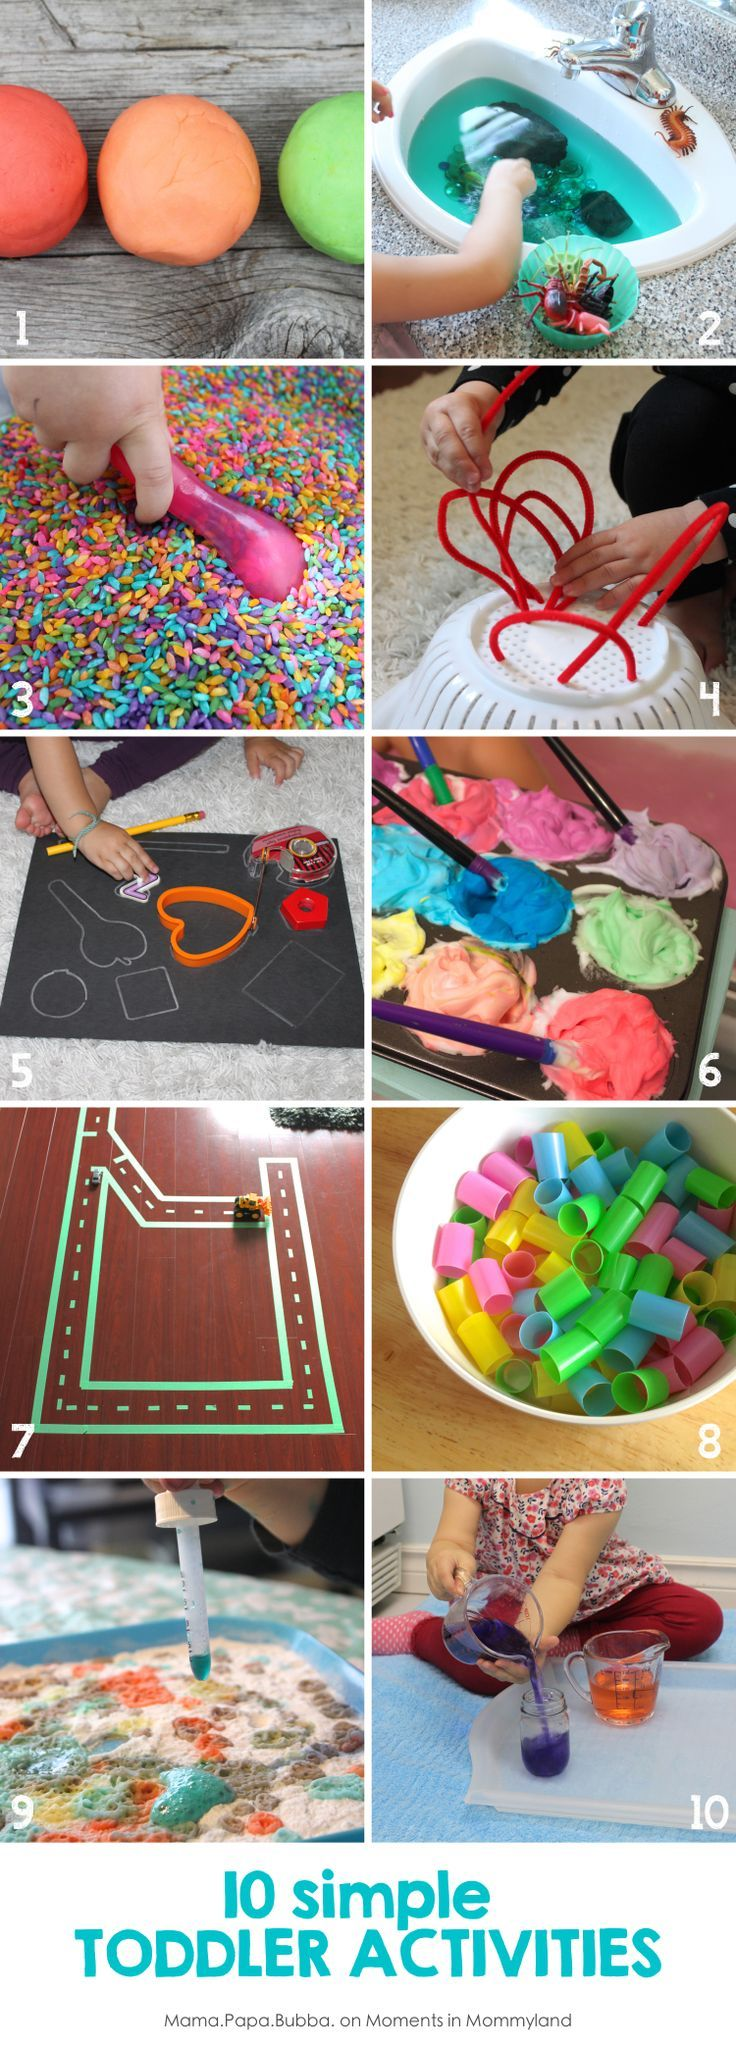 10 Simple Toddler Activities   Mama.Papa.Bubba. {for Moments in Mommyland}